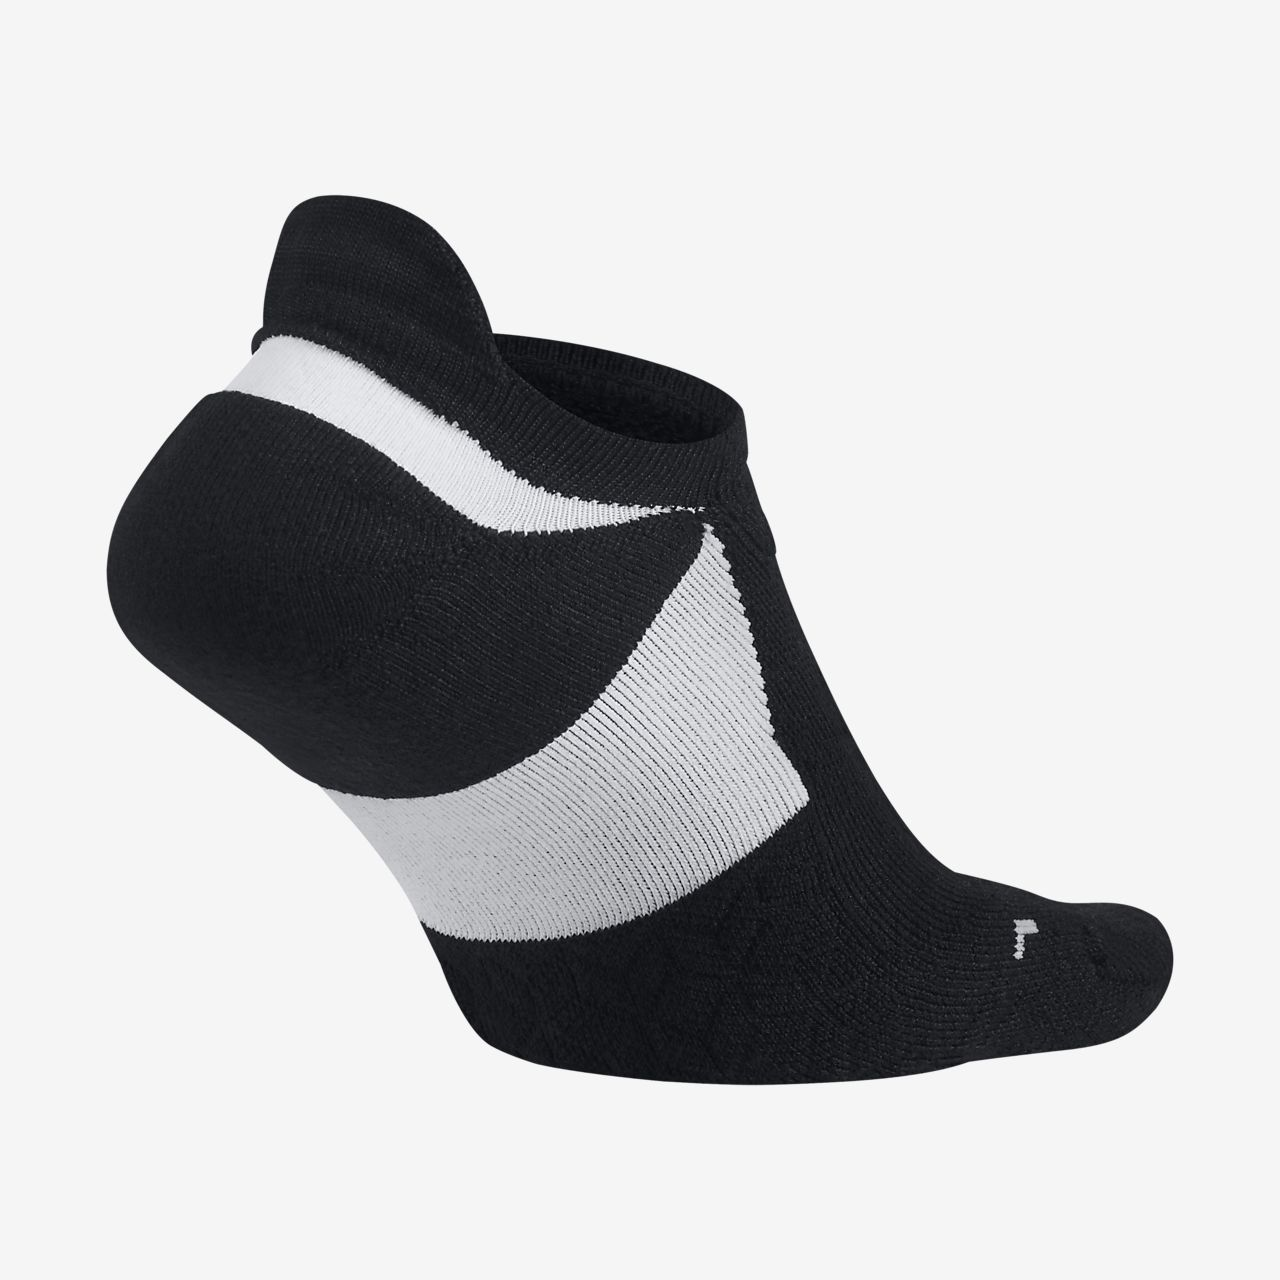 low priced 5afbe c5069 ... Nike Elite Cushioned No-Show Running Socks